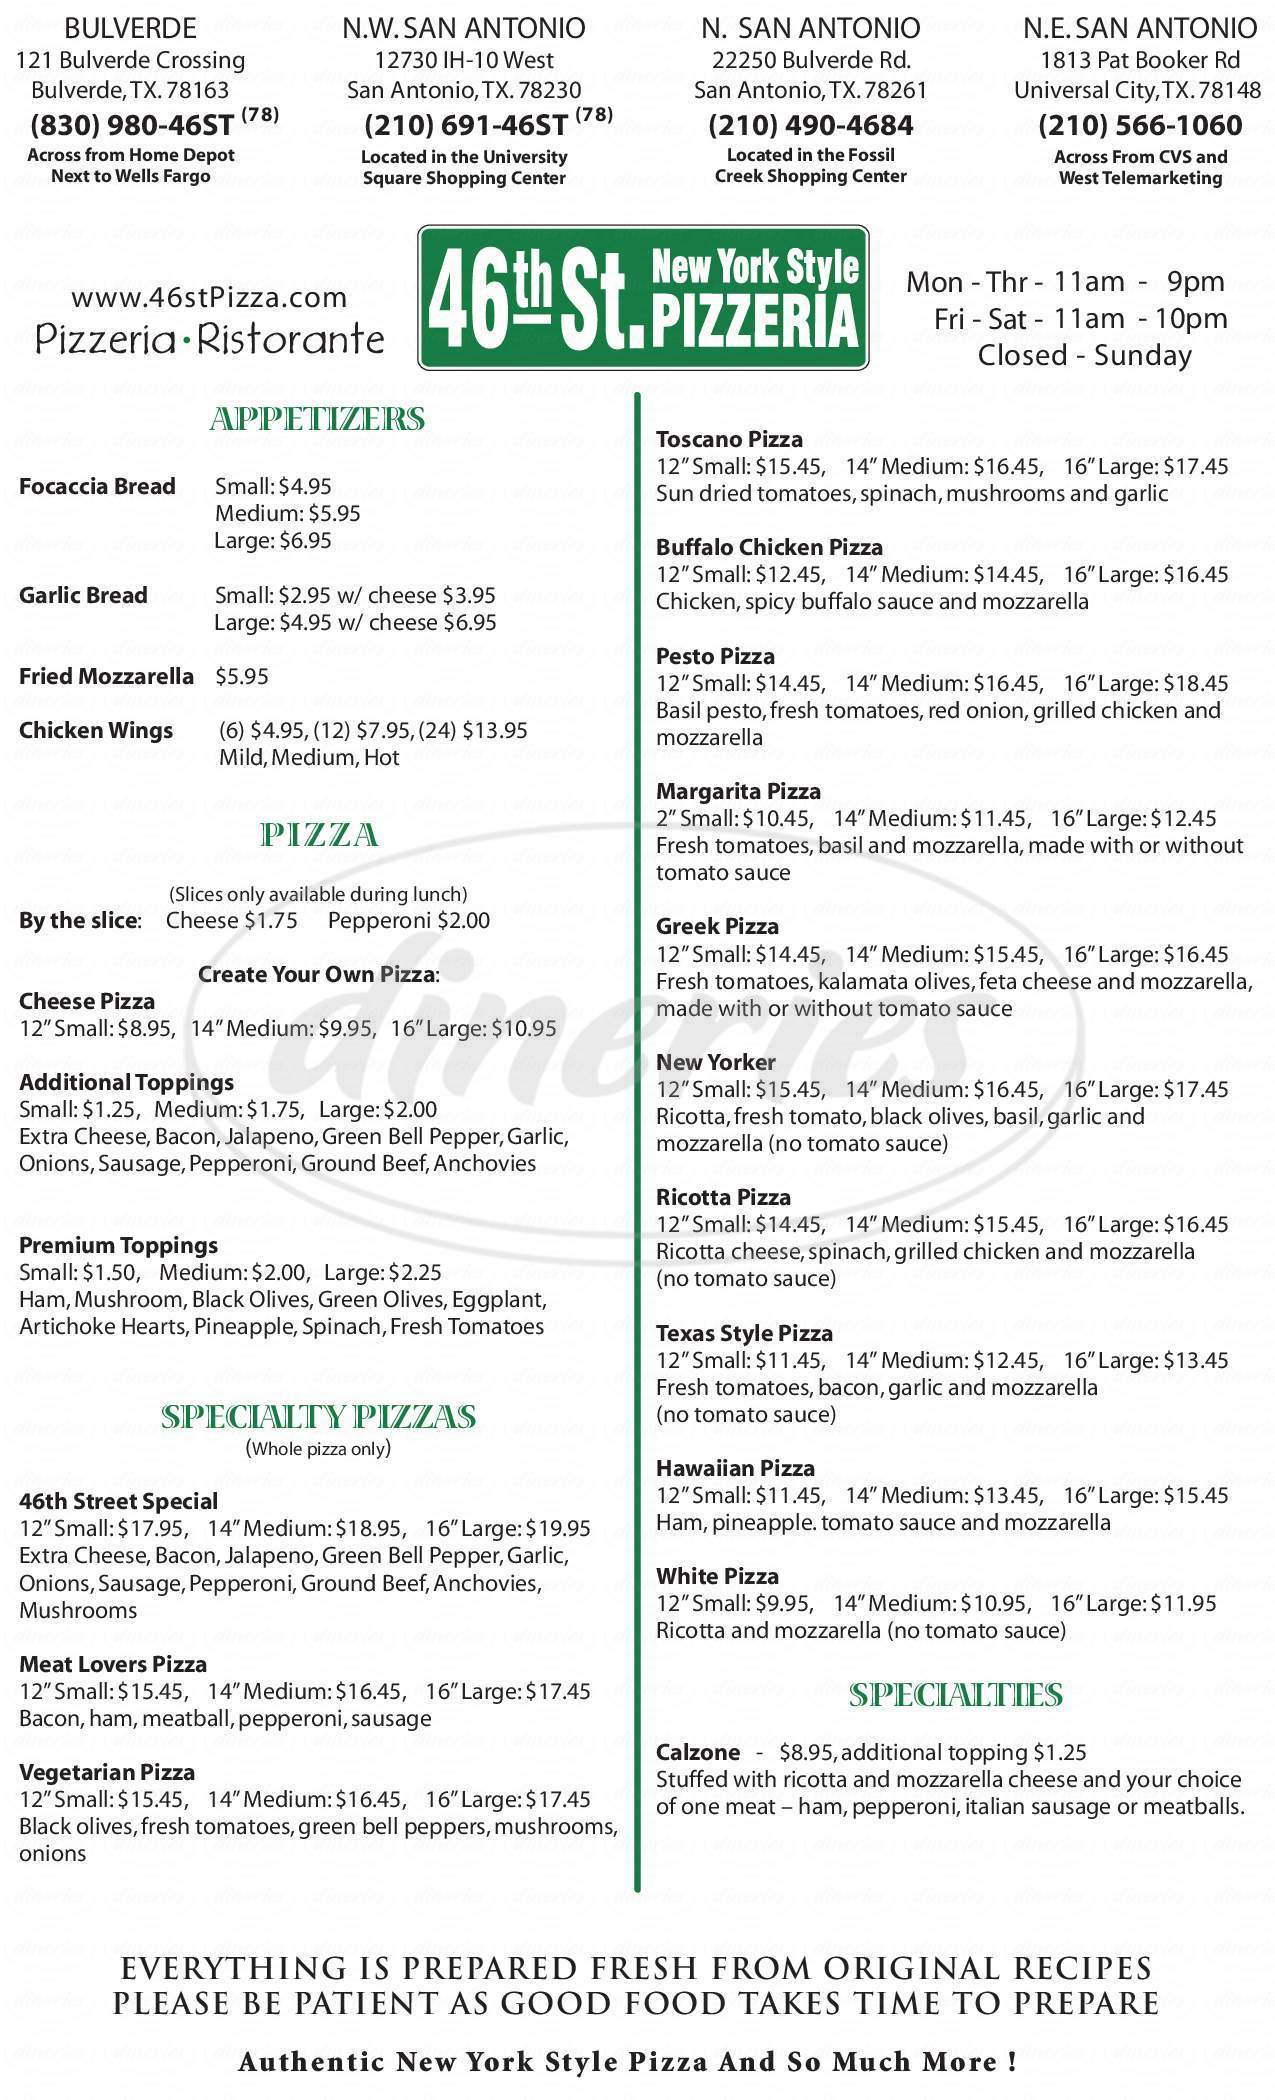 menu for 46th St. Pizzeria